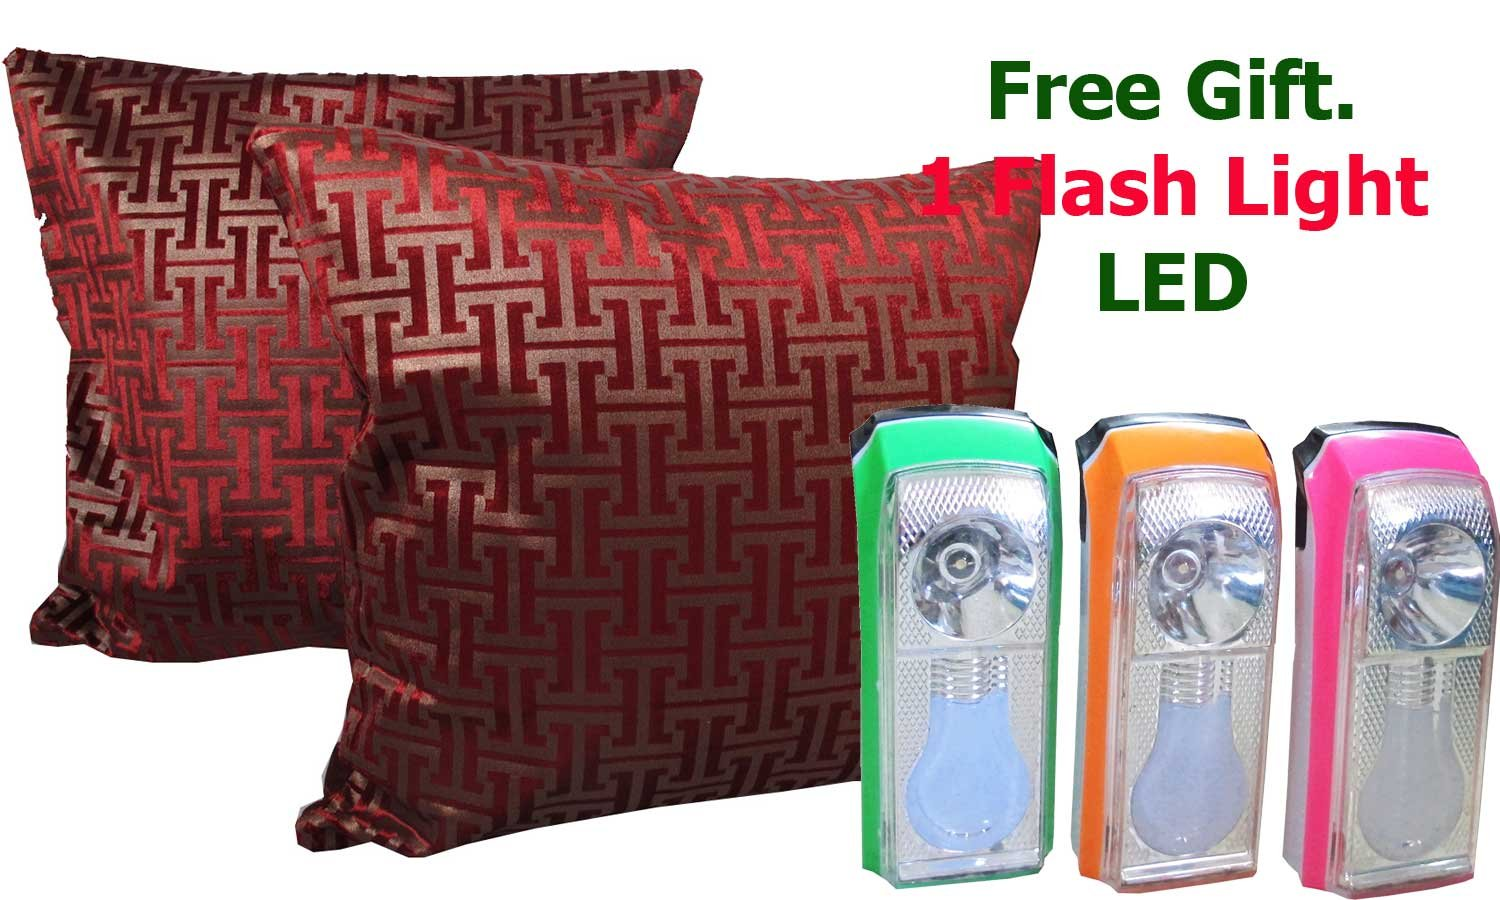 Thai Jewelry Presents. One Pair Graphic Throw Pillow Cover Decorative Sofa Couch Cushion Cover Zippered 17 X 17 InchFREE 1 FLASH LIGHT